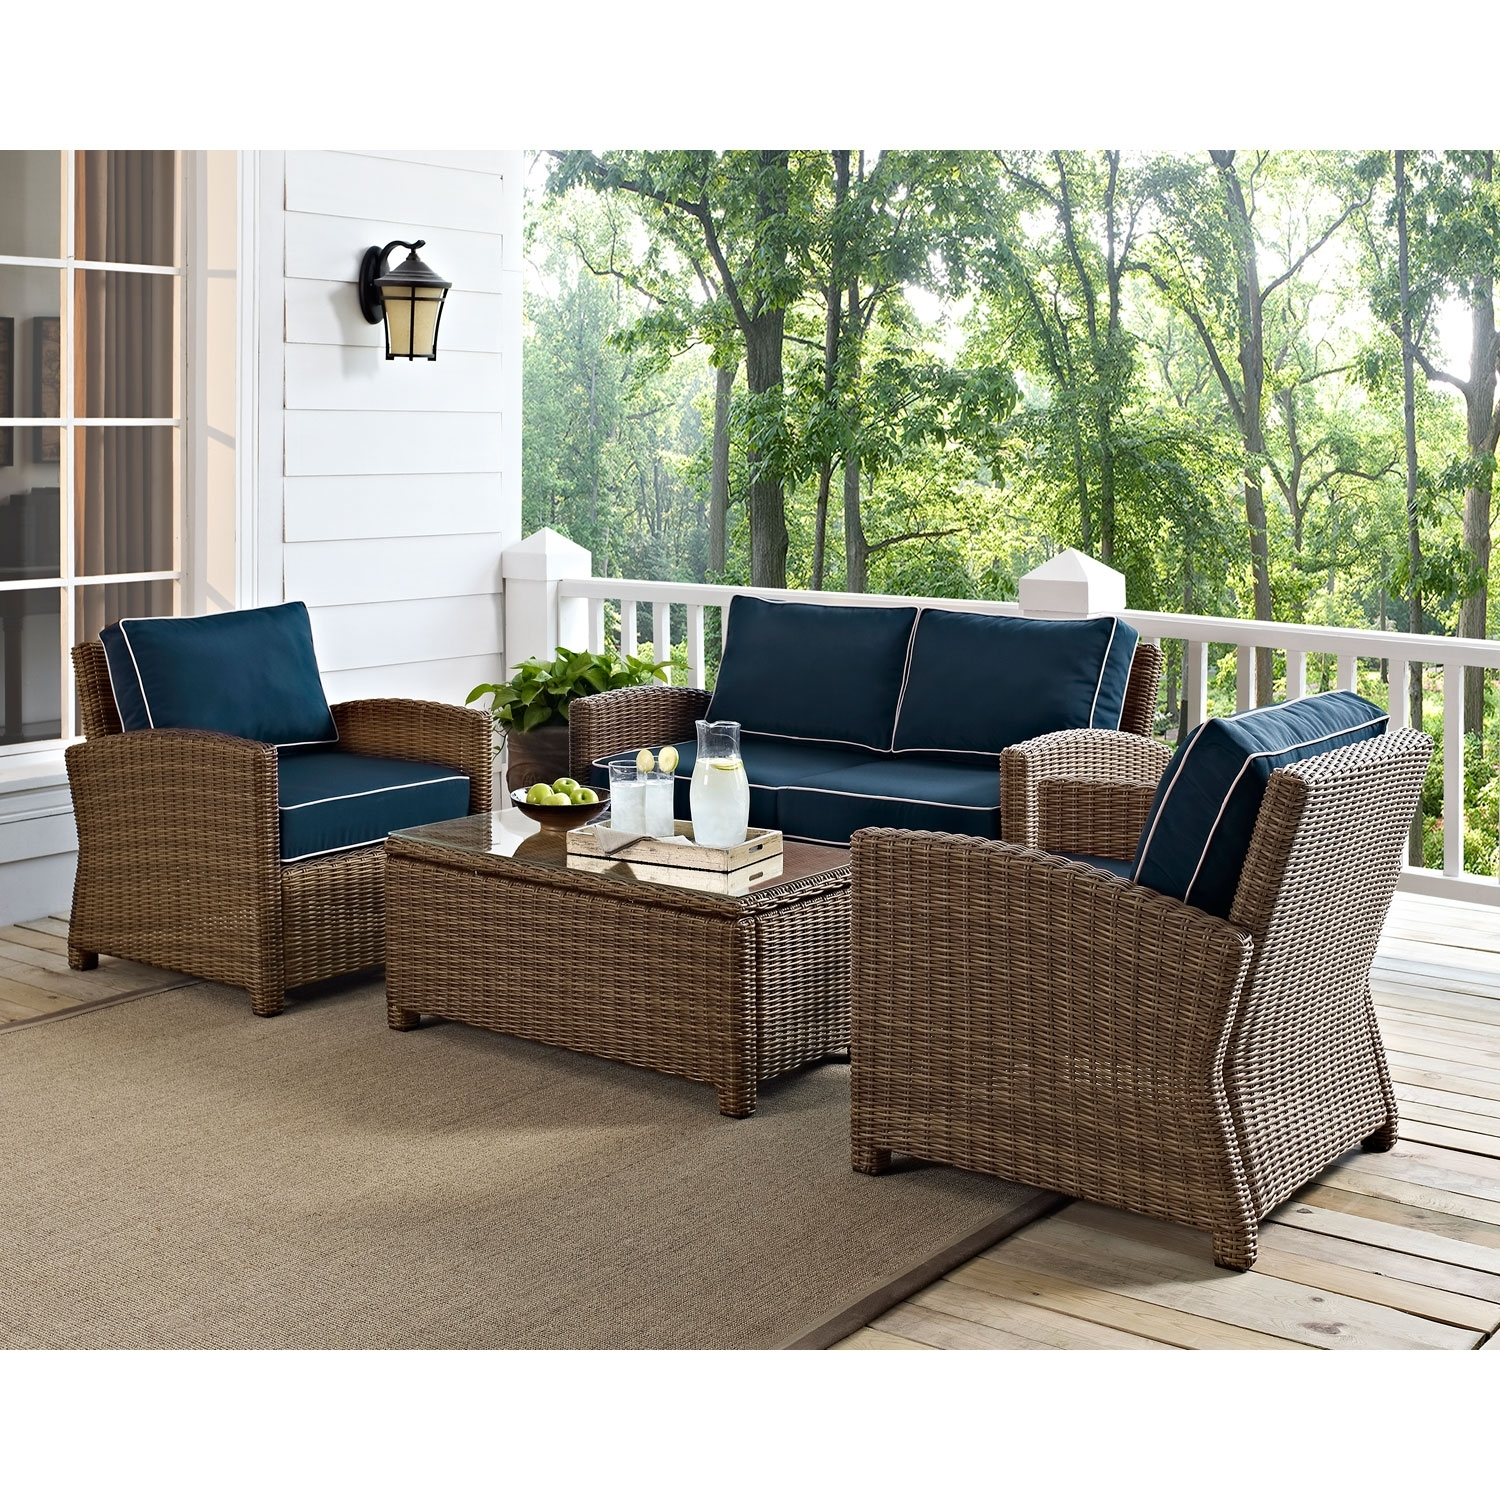 Image of: Bradenton 4 Piece Outdoor Wicker Seating Set With Navy Cushions Throughout Navy Outdoor Cushions Perfect Navy Outdoor Cushions